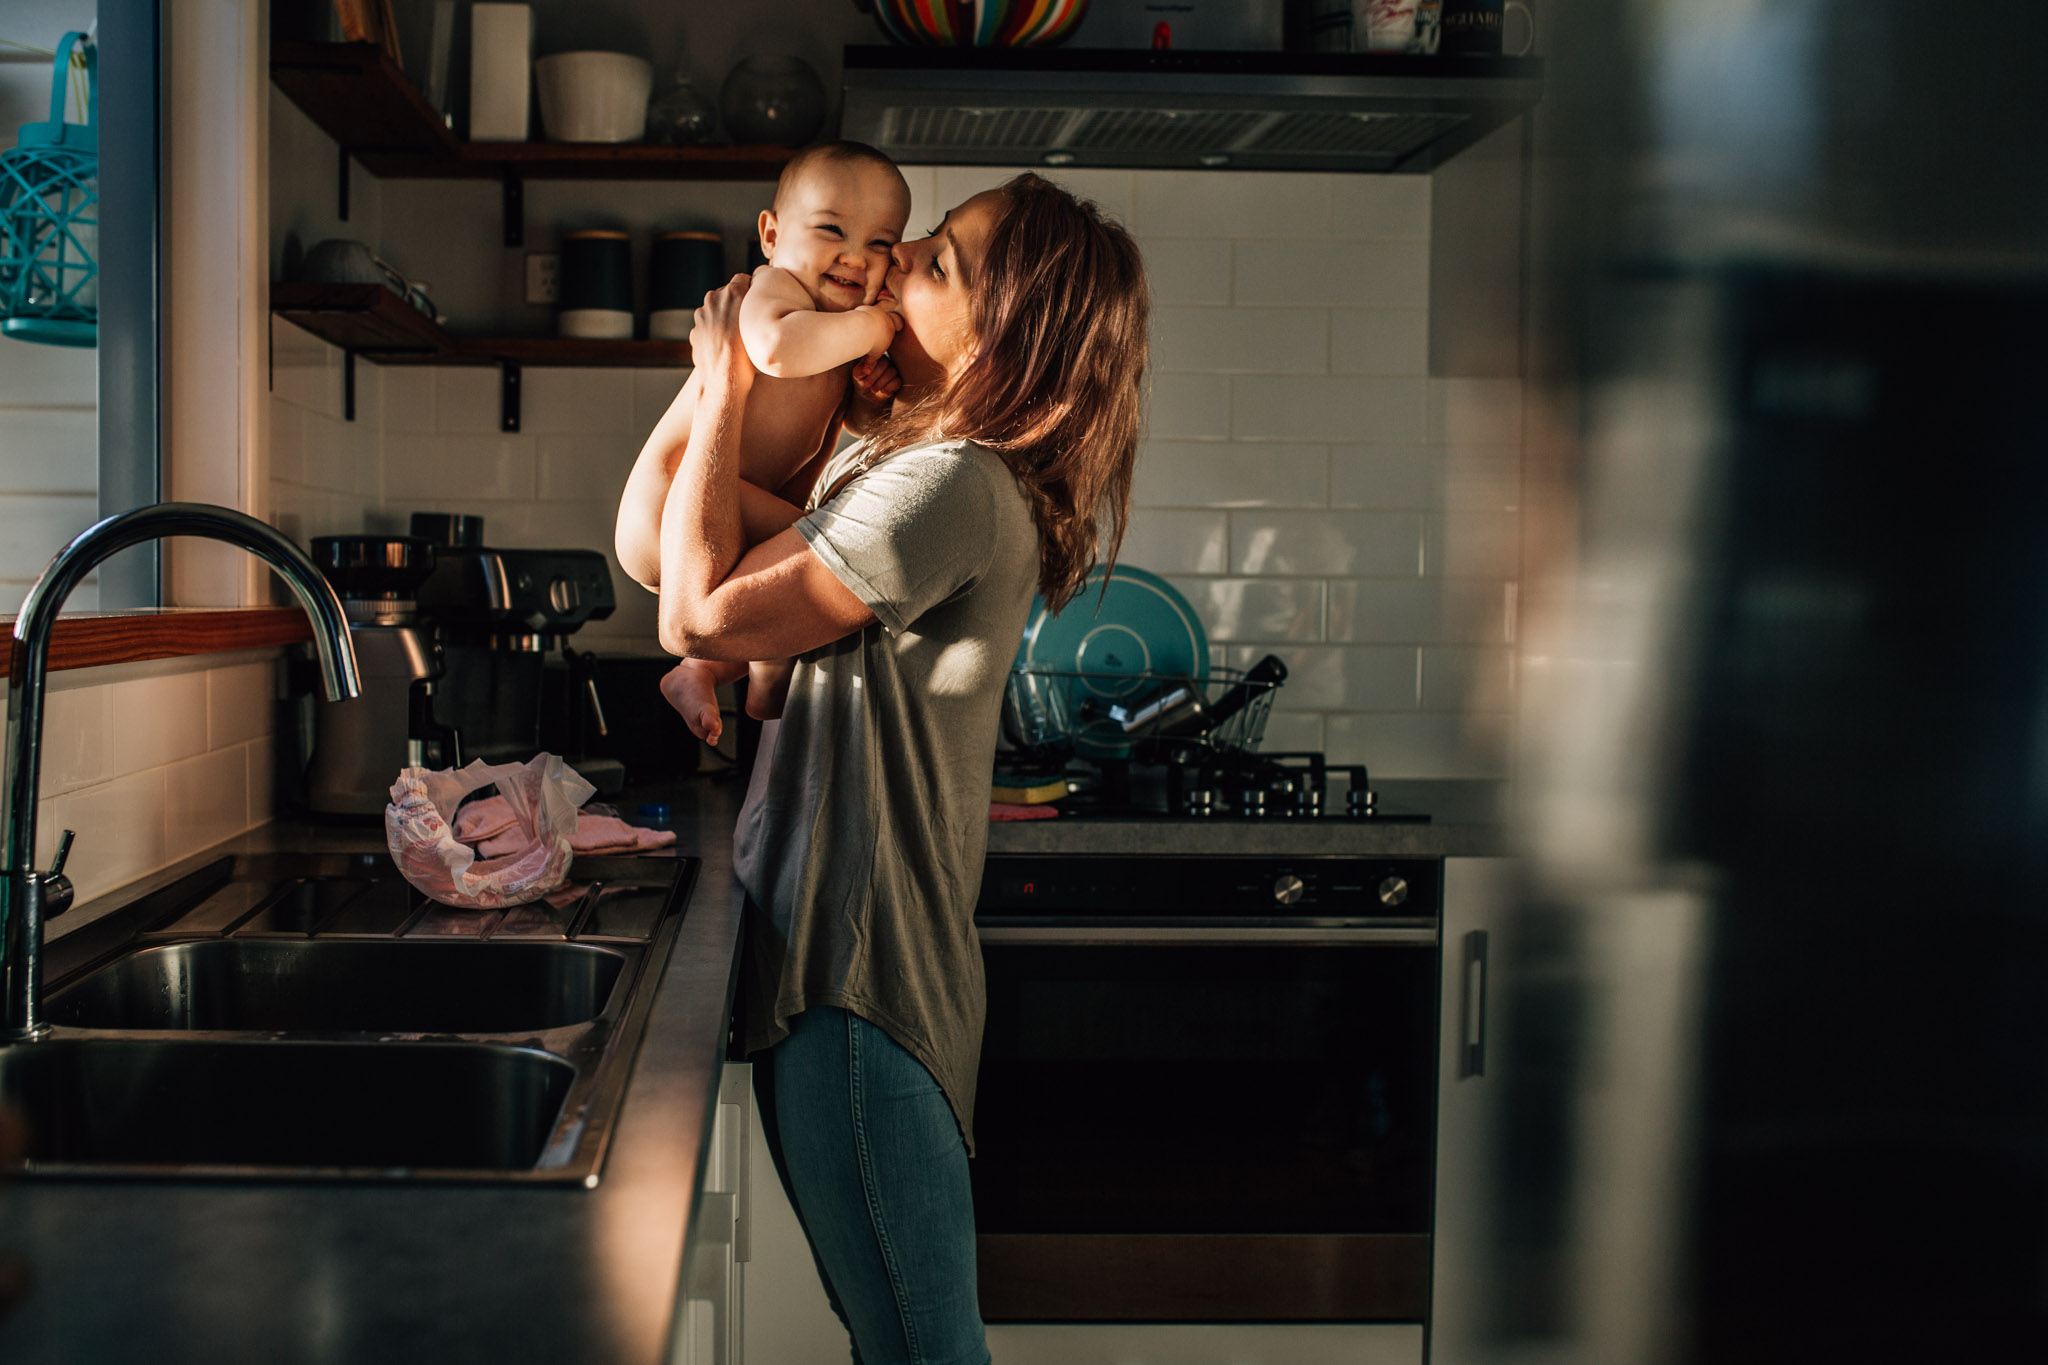 mother-kissing-baby-daughter-before-placing-her-in-sink-bath (1 of 1).jpg